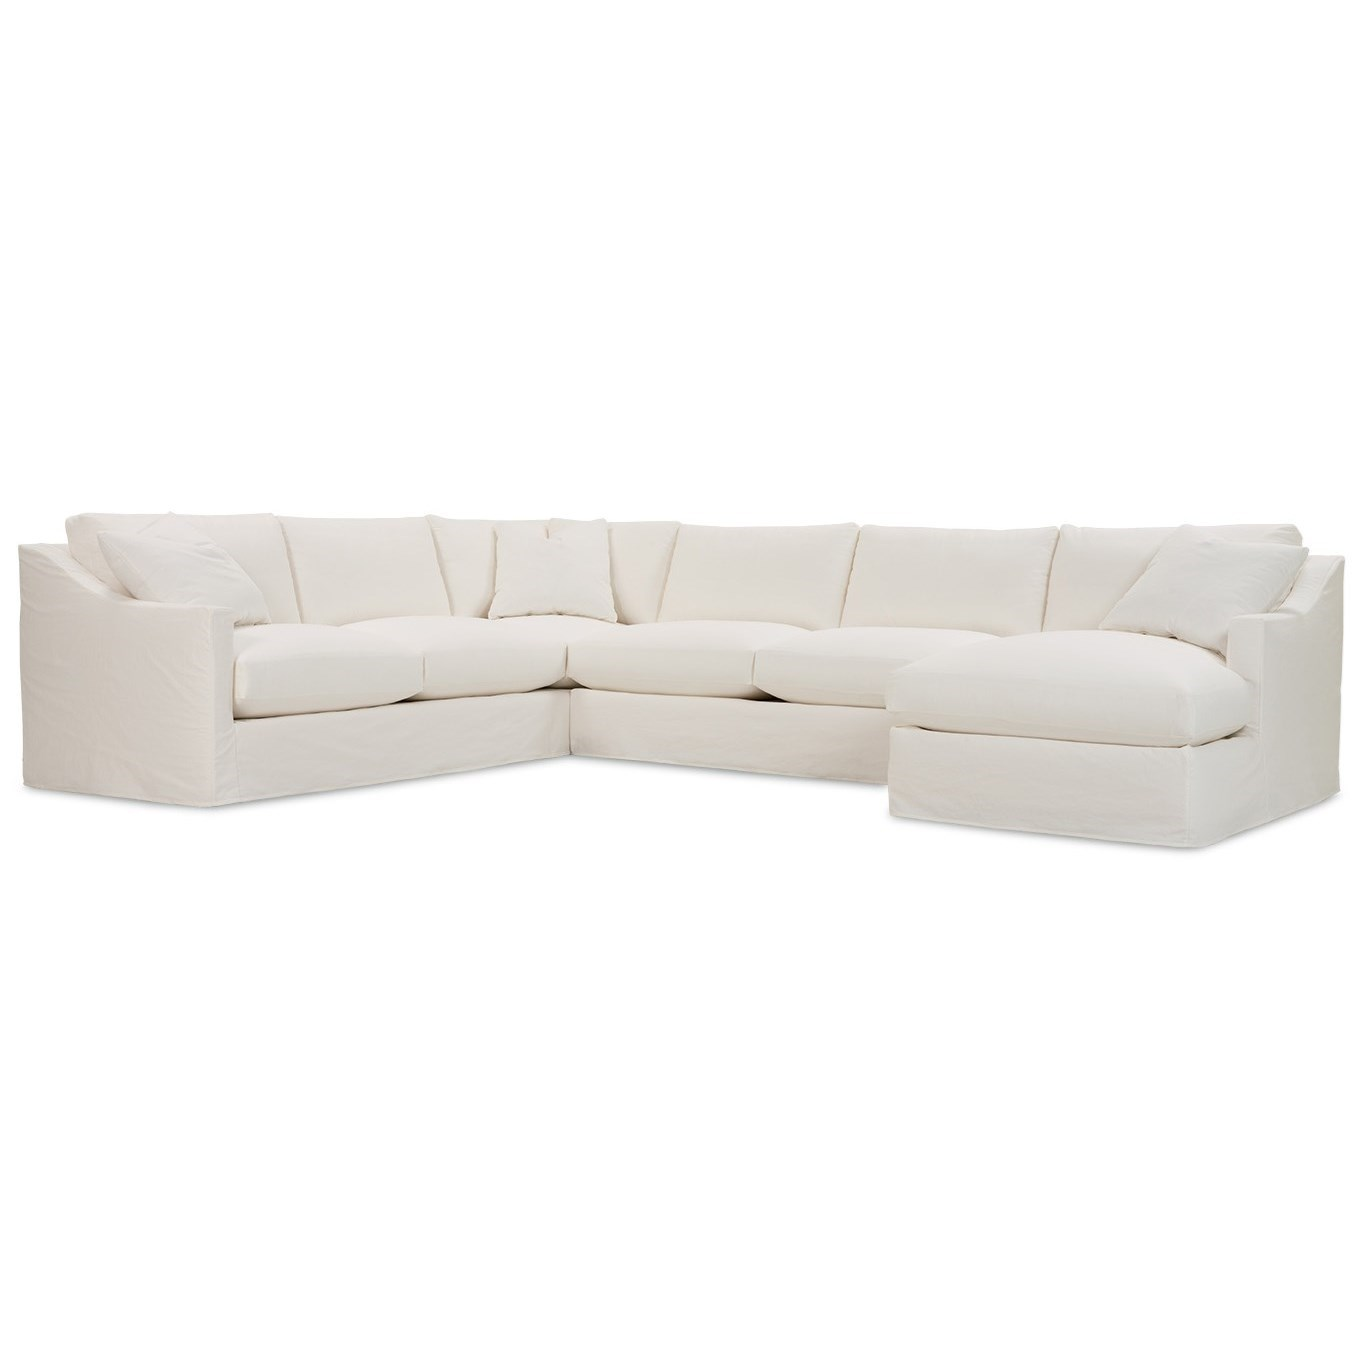 Bradford Slipcovered Sectional Sofa  by Rowe at Baer's Furniture